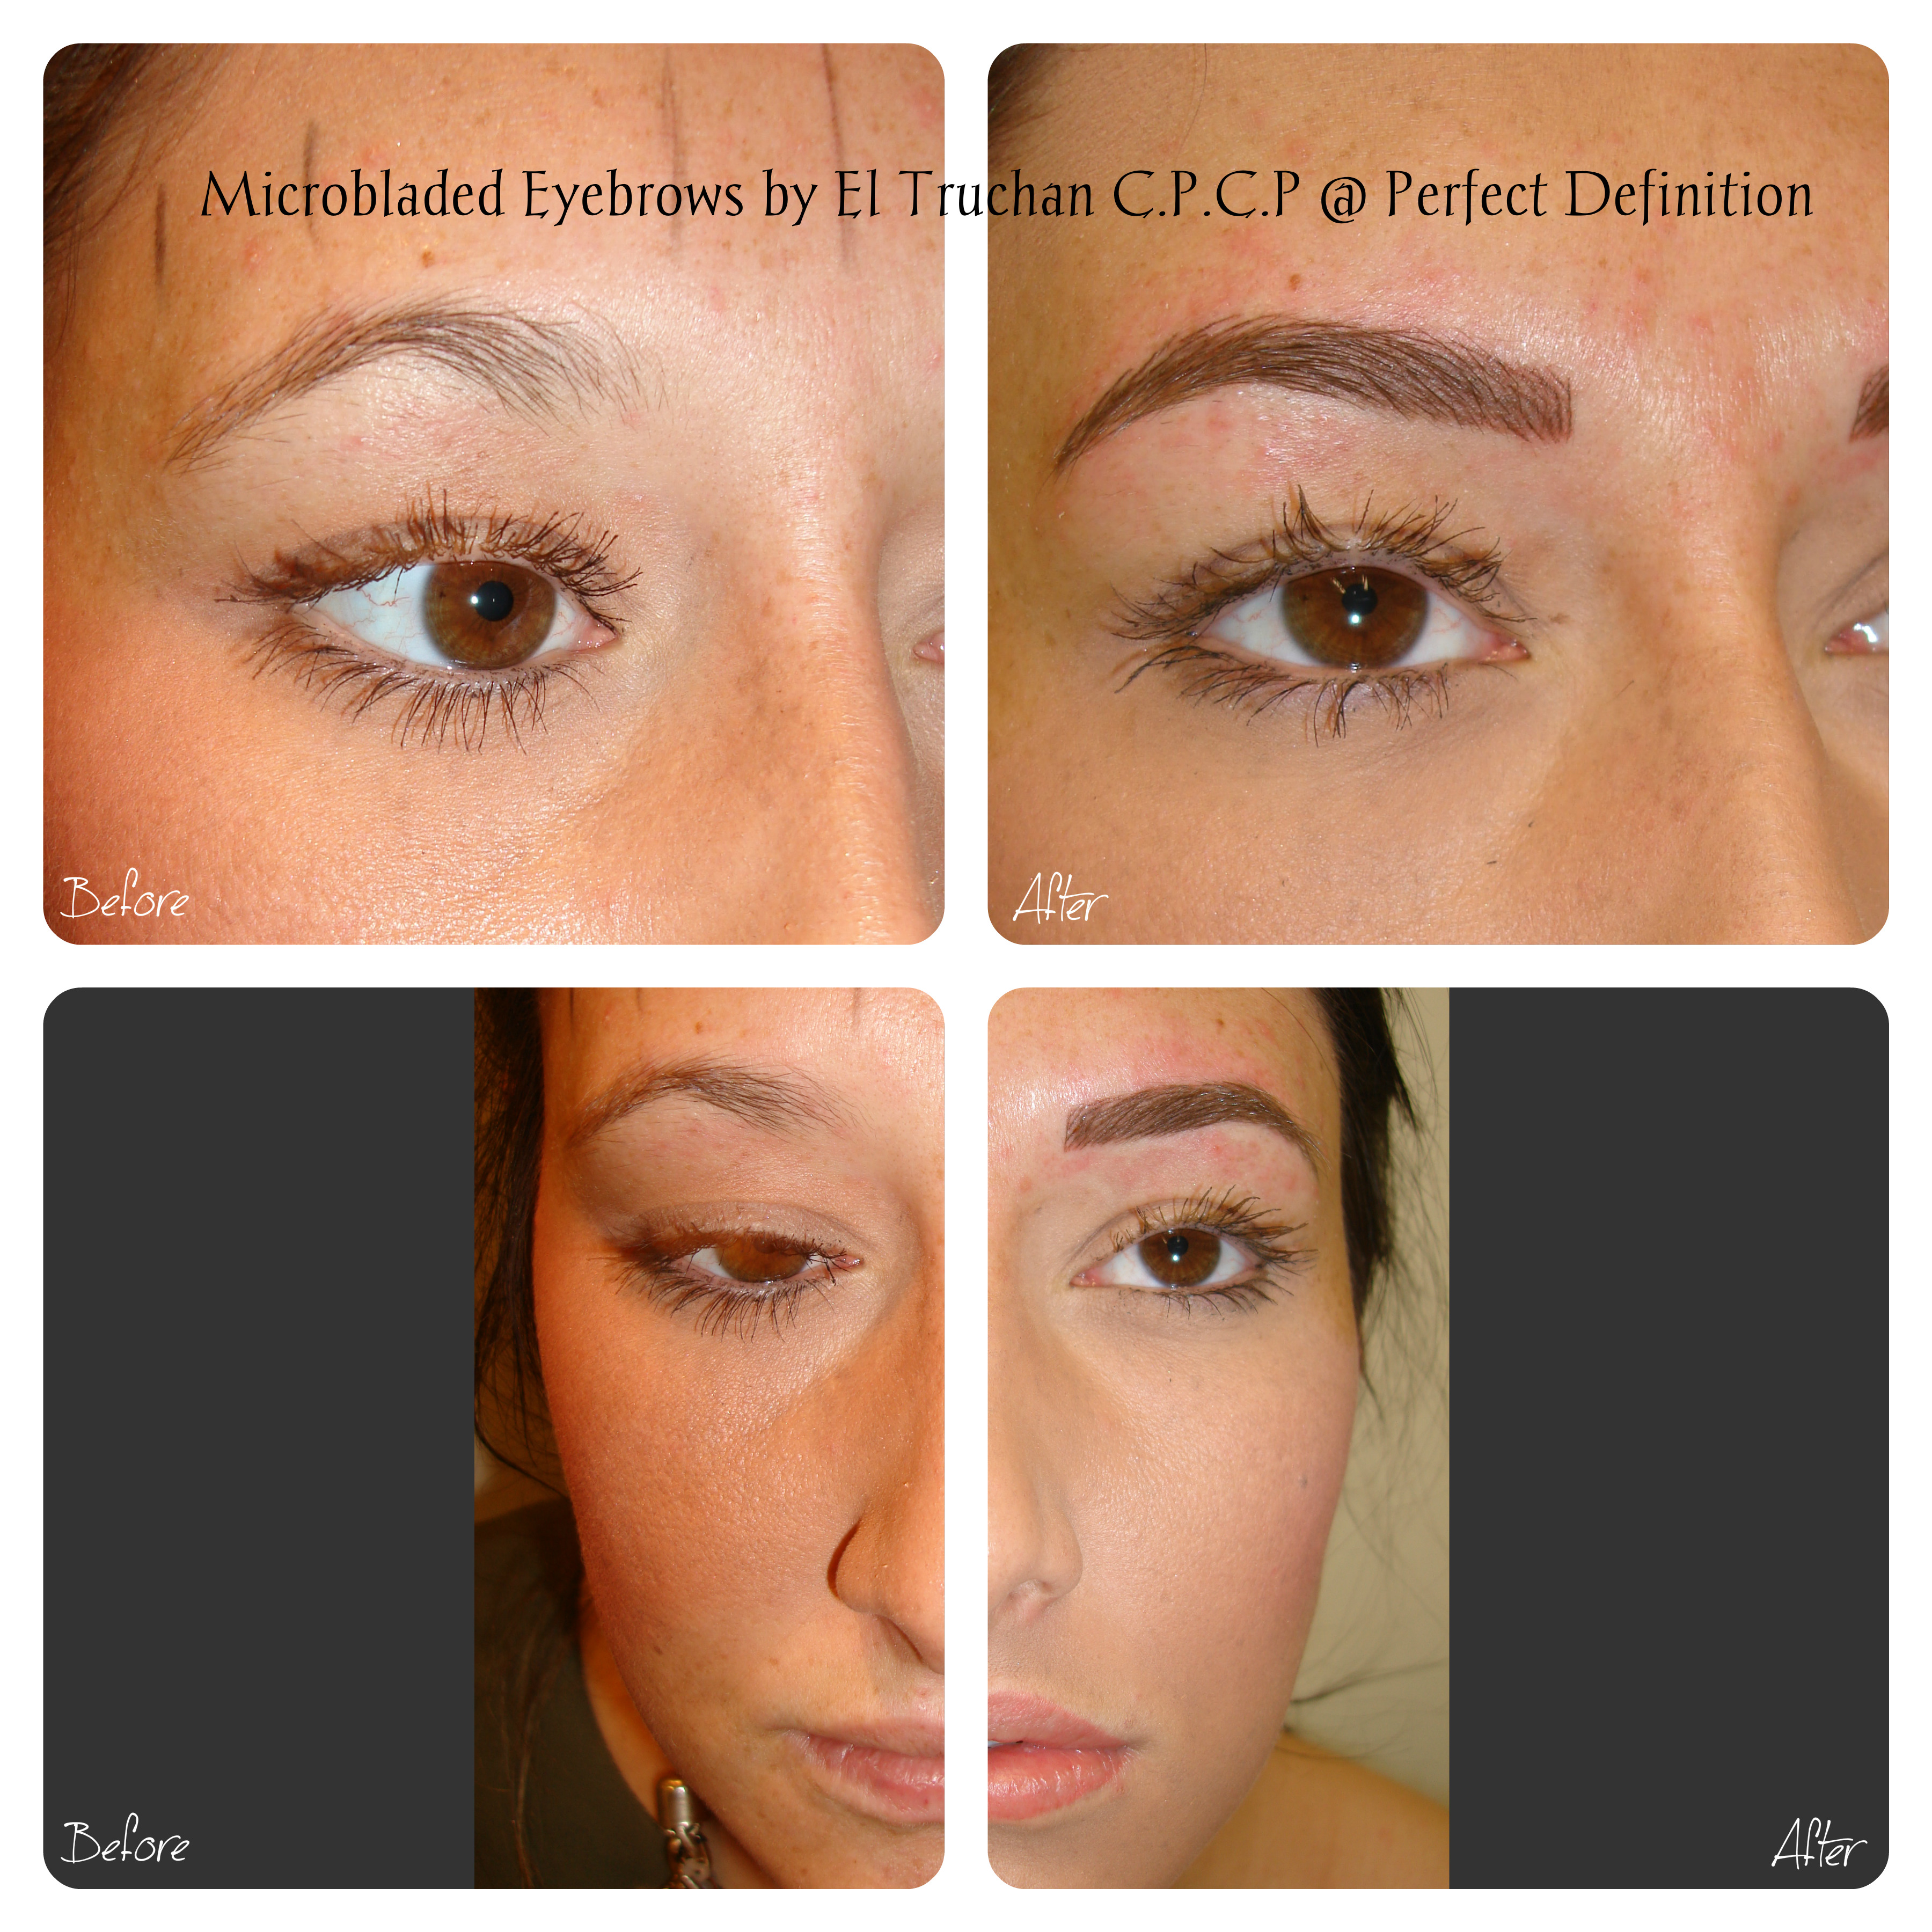 Microbladed Eyebrows at Perfect Definition by El Truchan in London